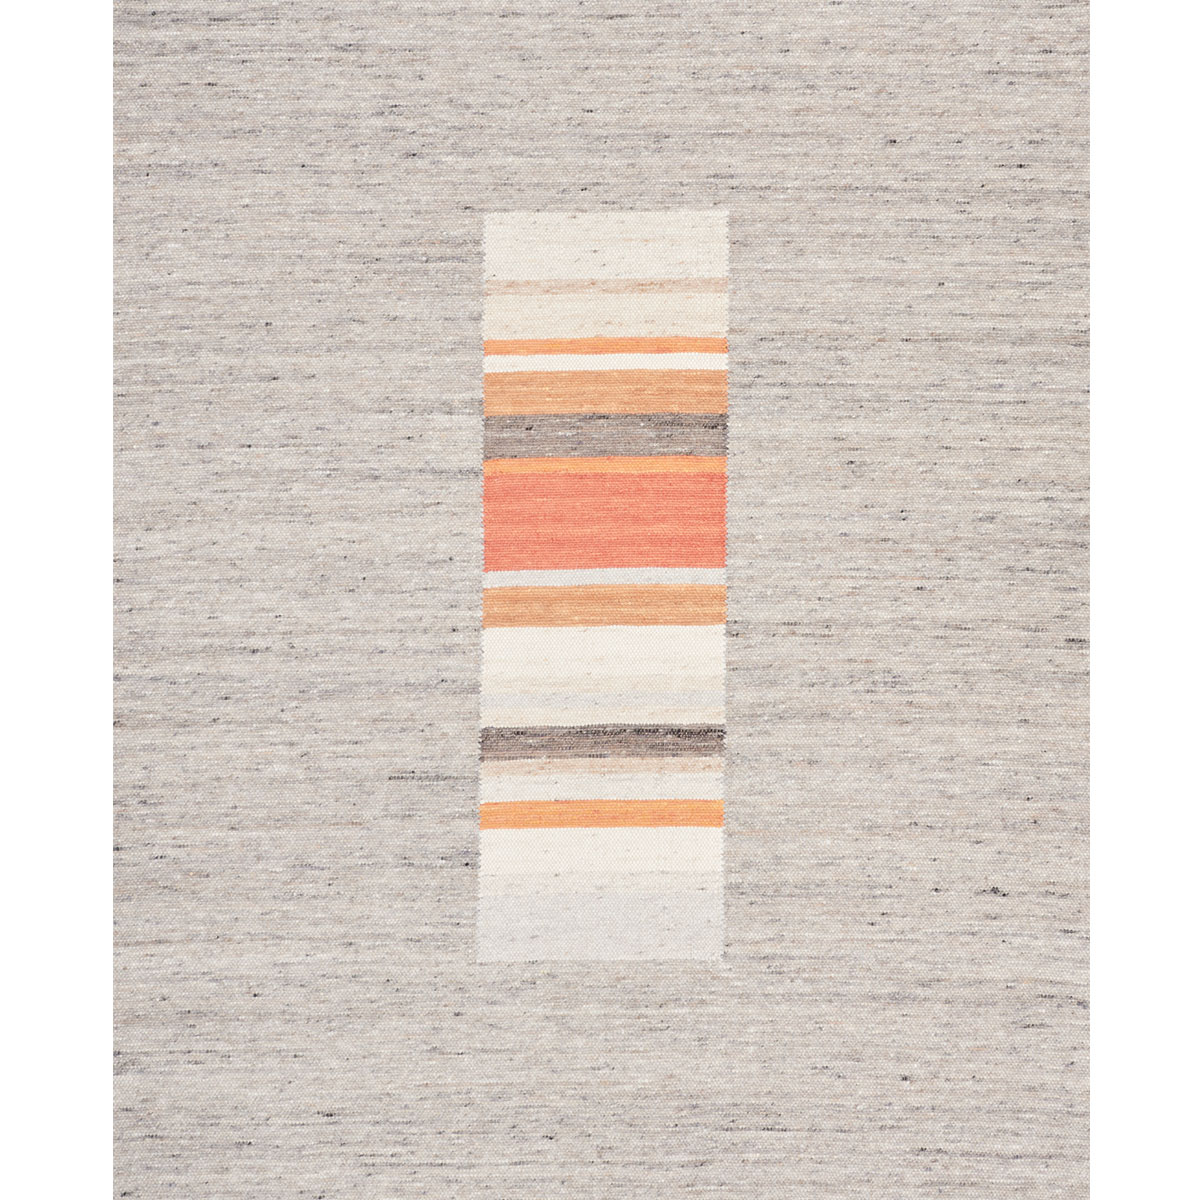 montisi_wool_hand-woven_patterson-flynn-martin_pfm